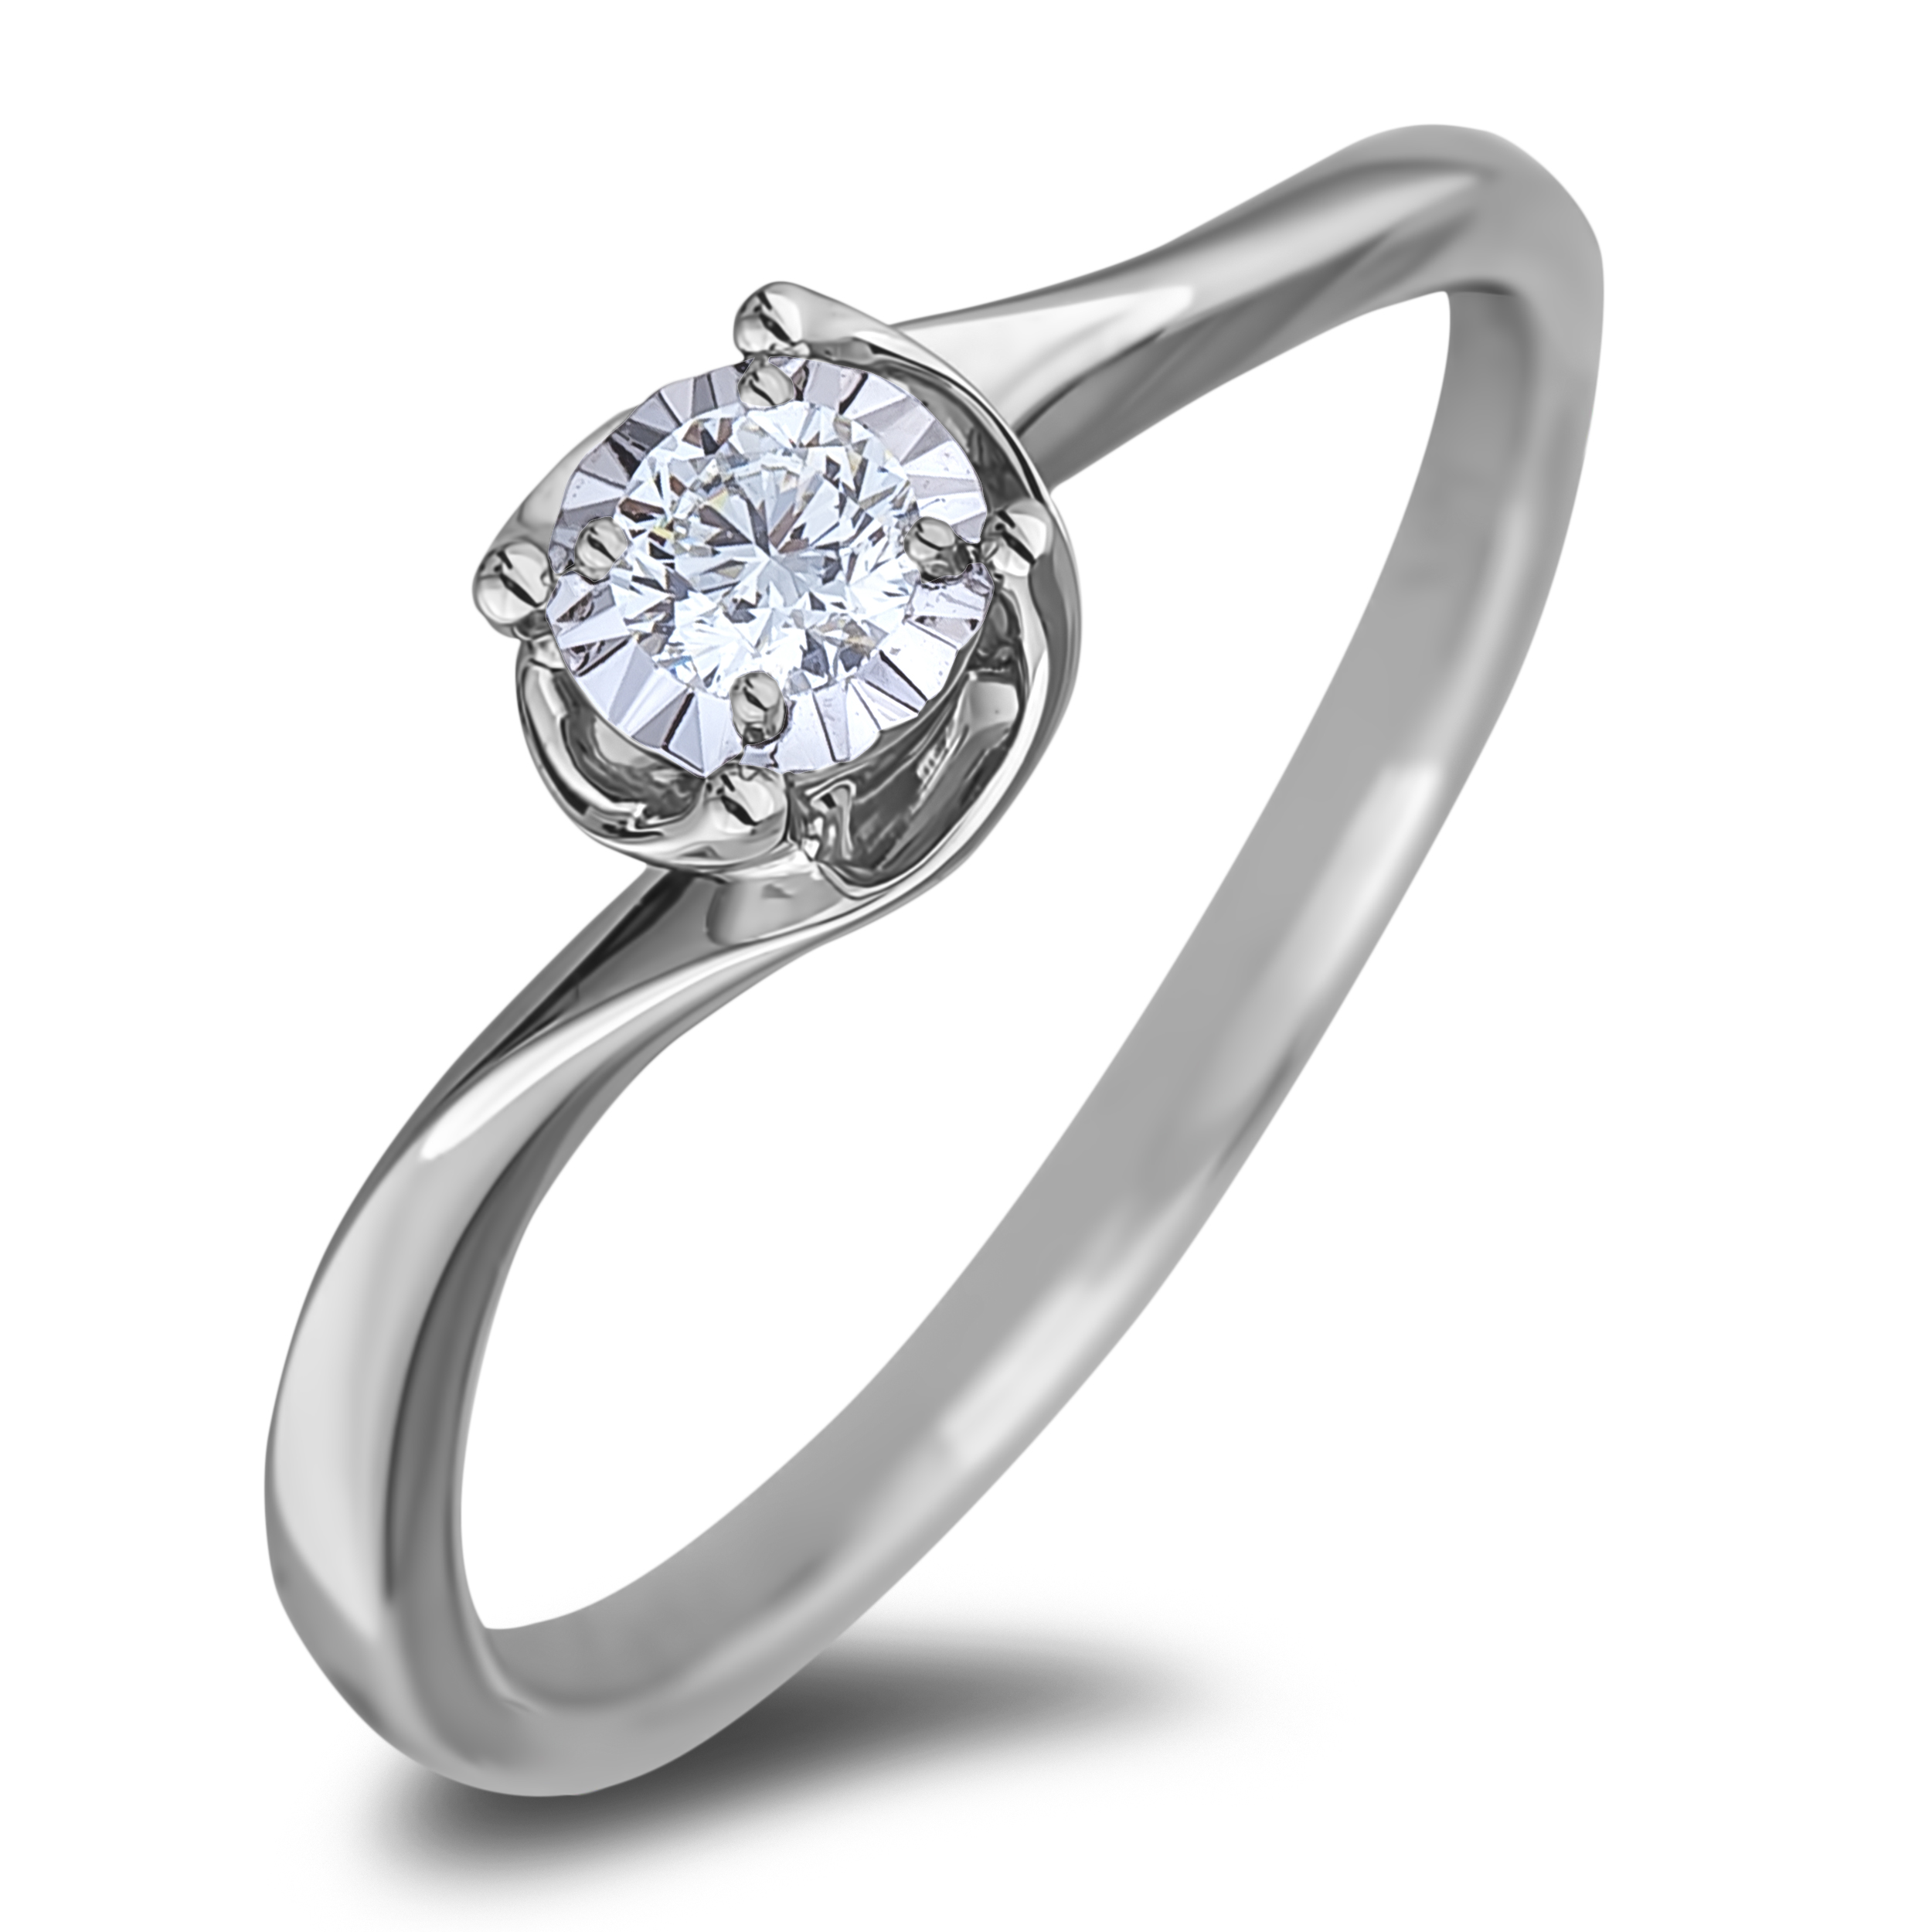 Diamond Solitaire Rings JS-AFCR1022010 (Rings)